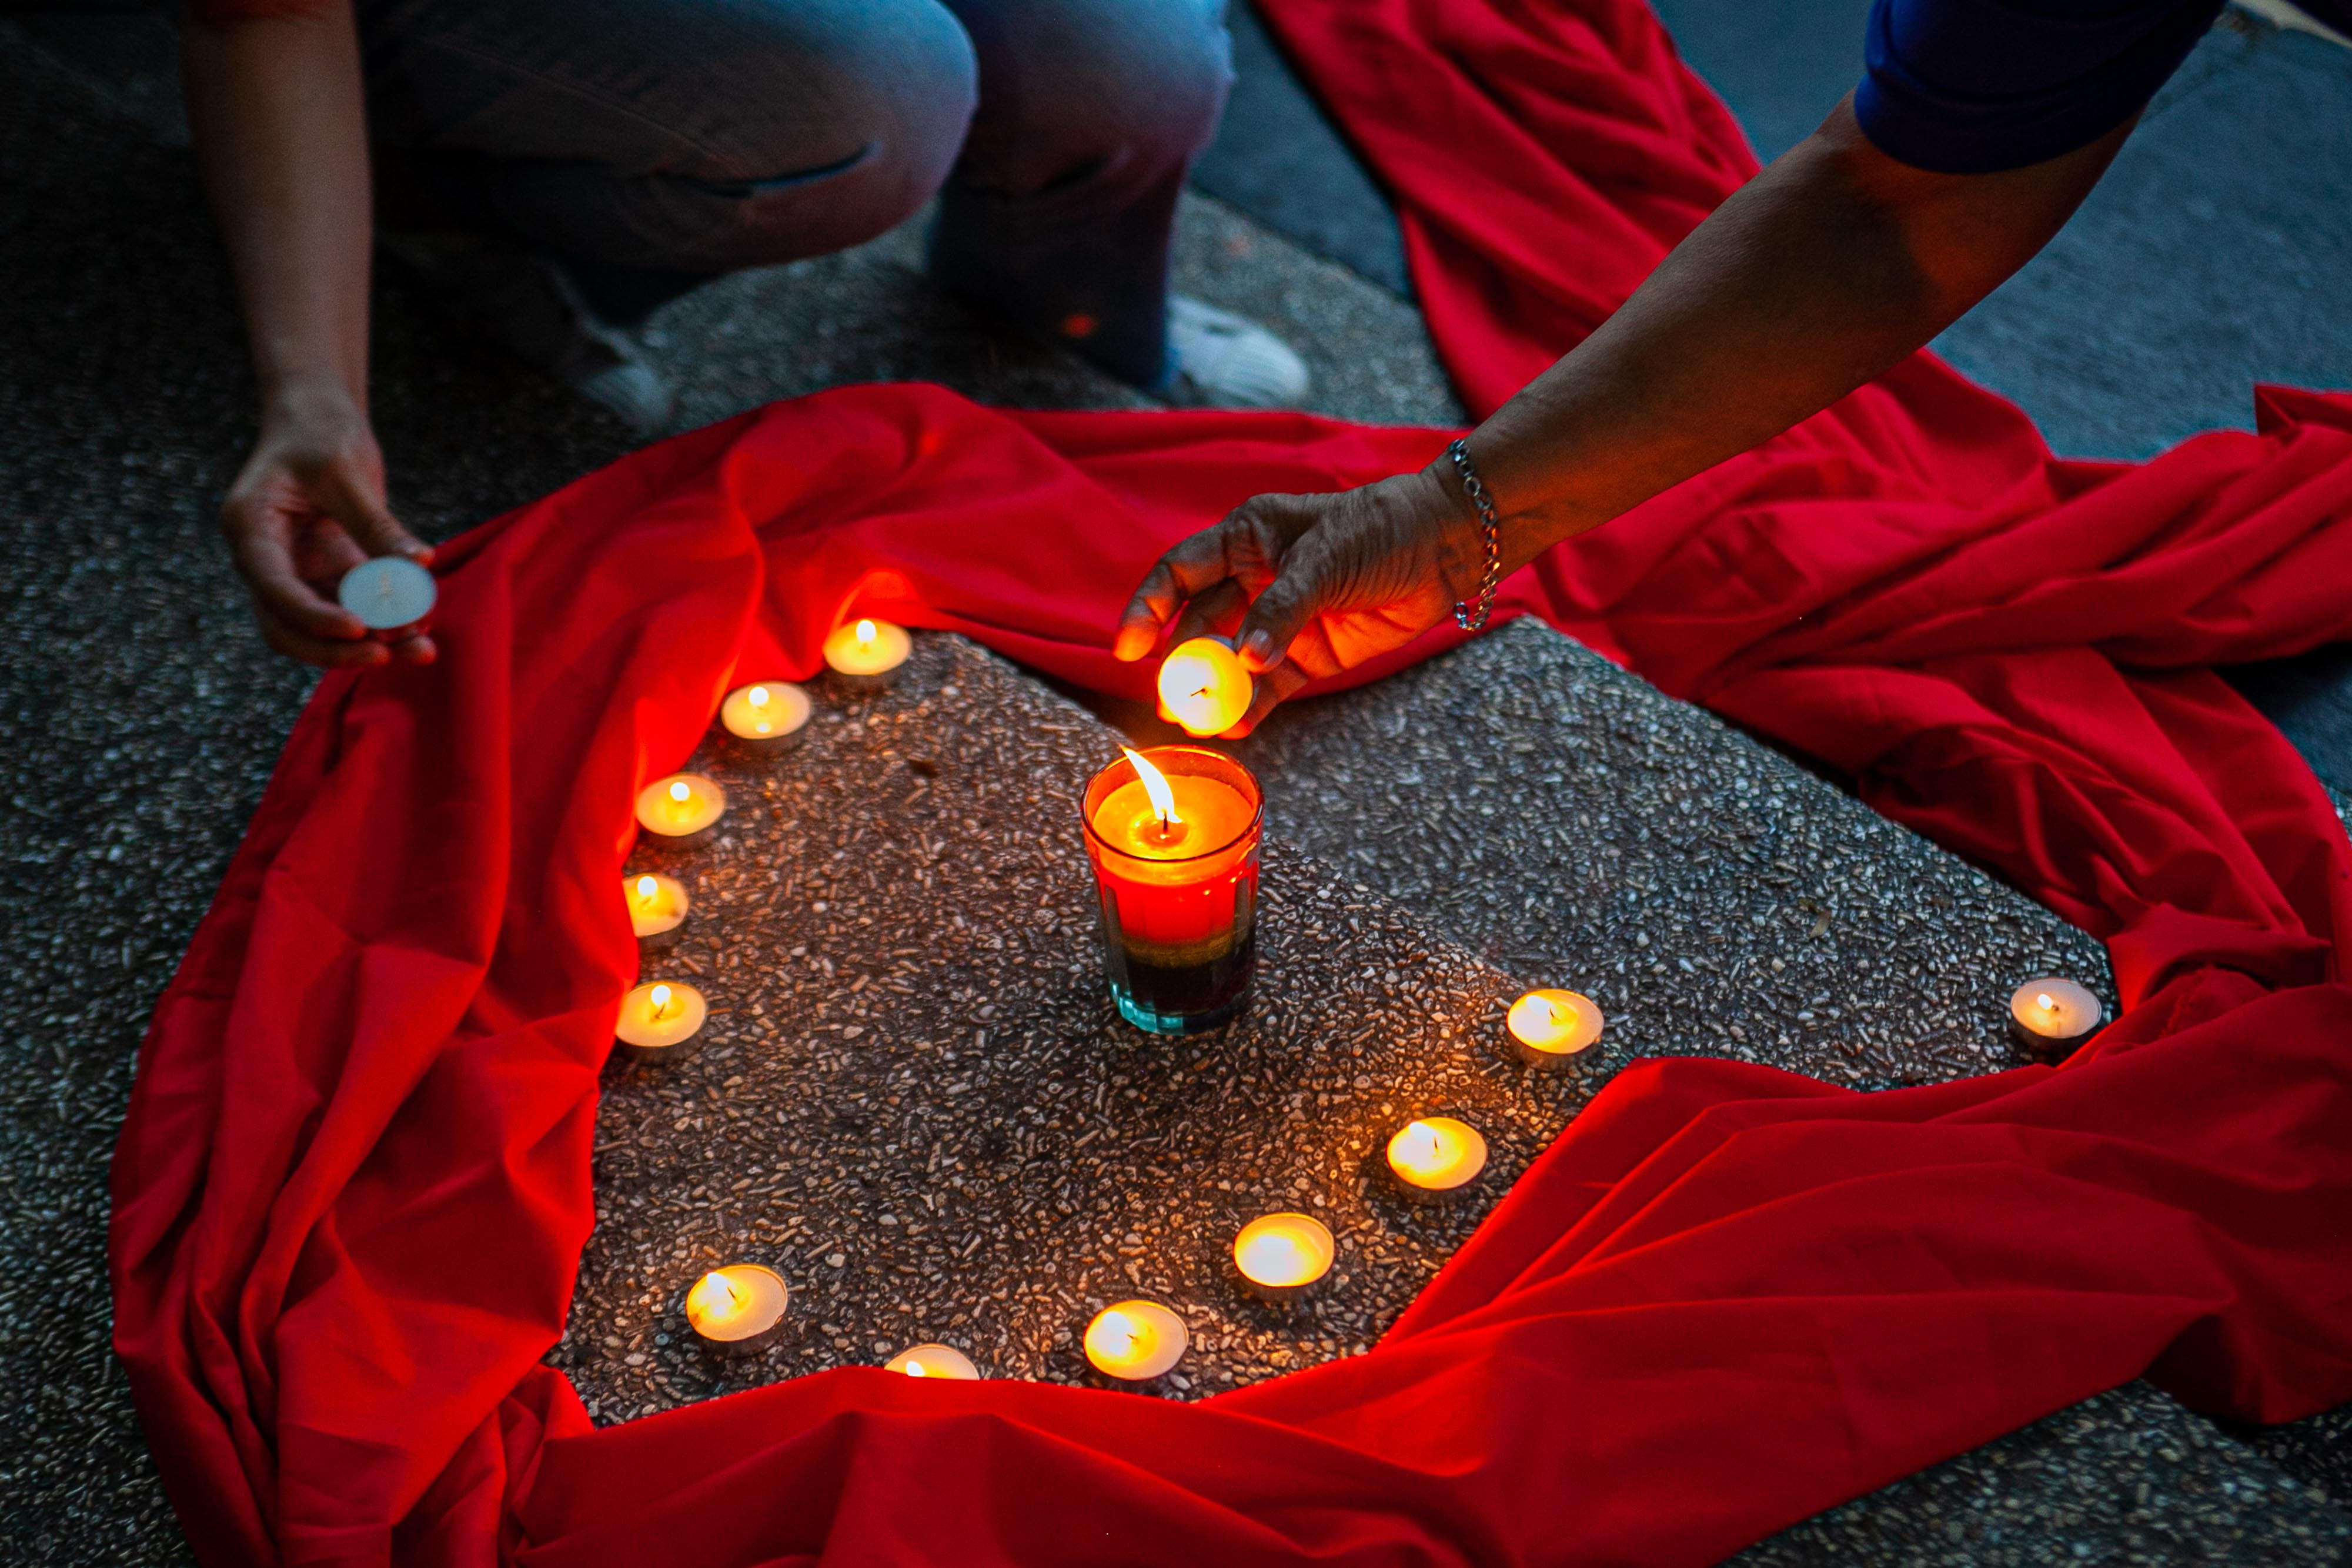 Advocates light candles during the World AIDS Day Memorial in the Philippine capital. (Photo: Mark Saludes/Oxfam)